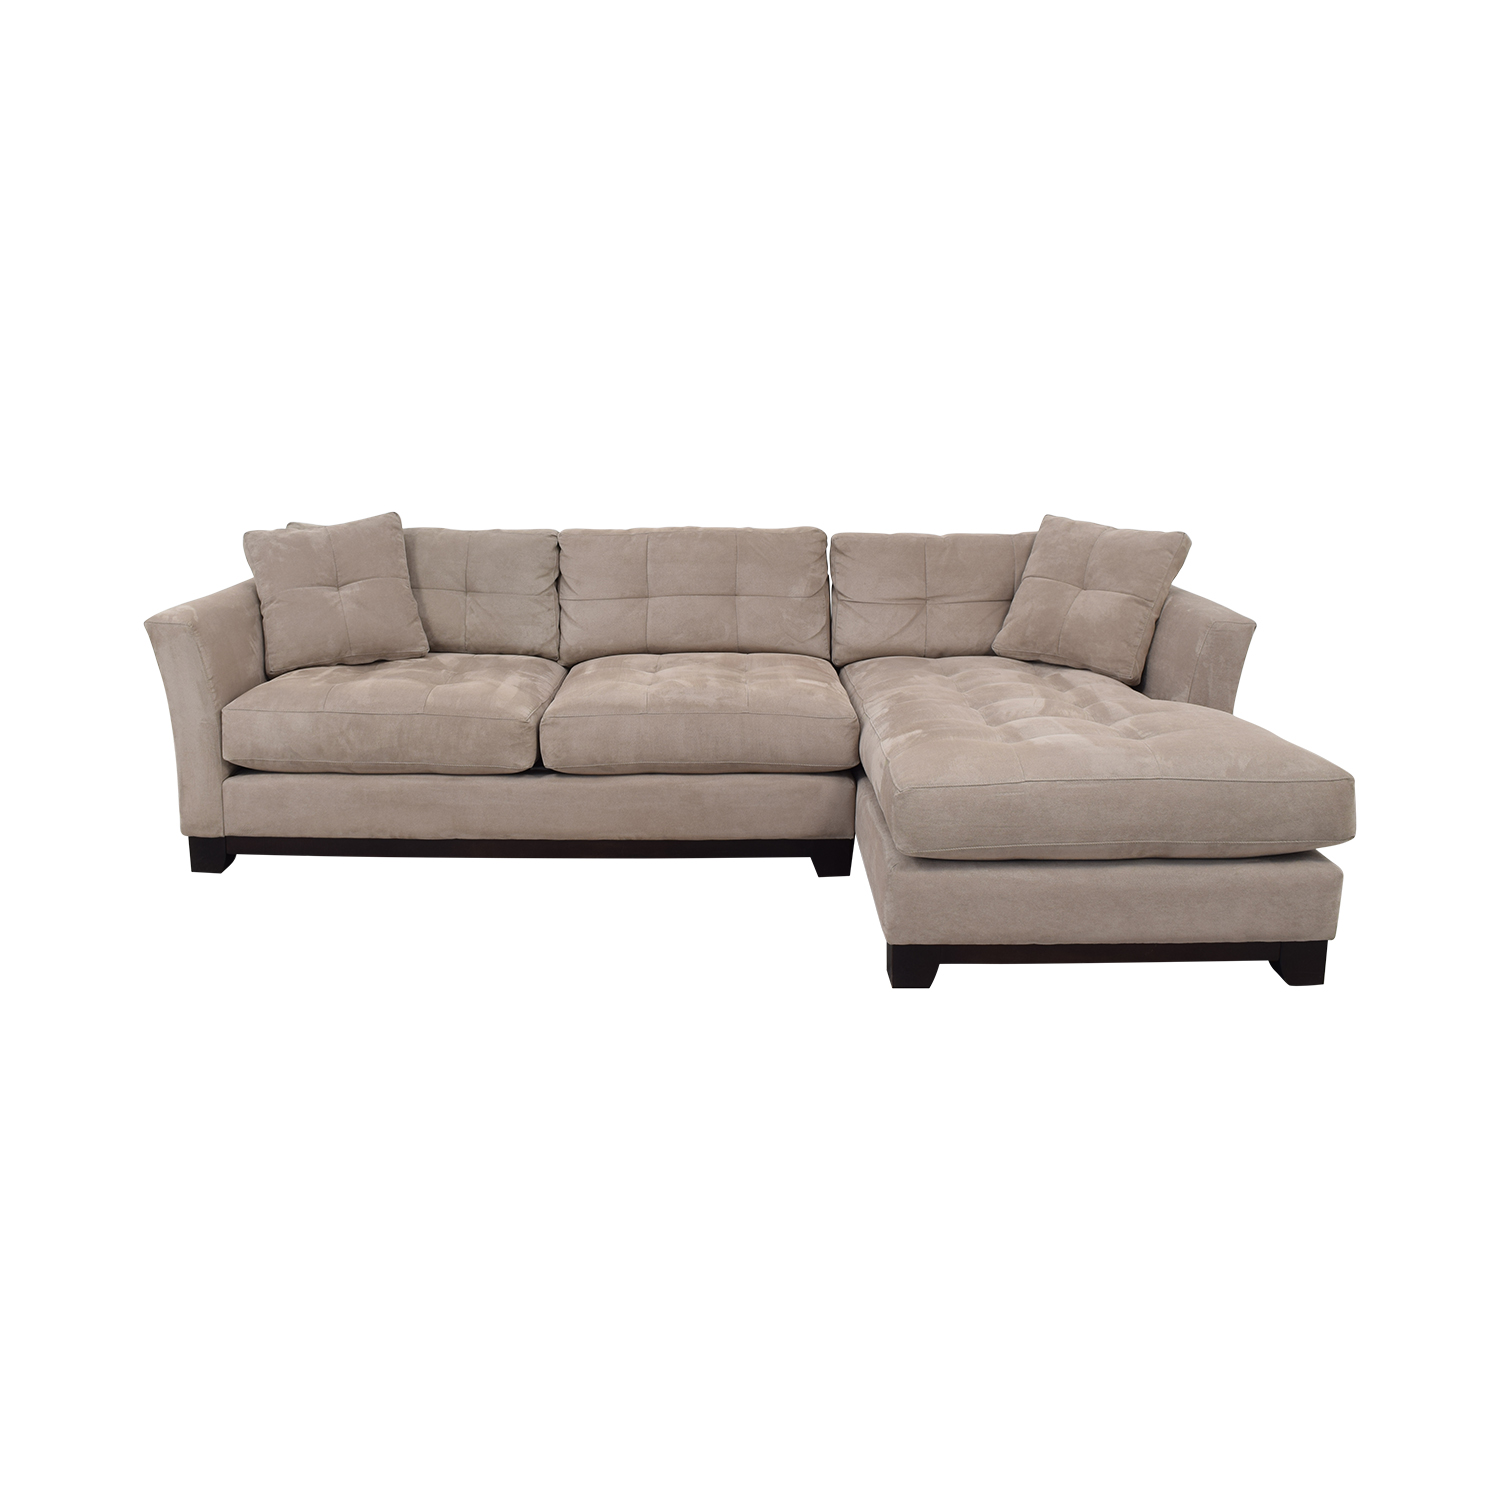 shop Macy's Macy's Elliot Cindy Crawford Grey Tufted Chaise Sectional online